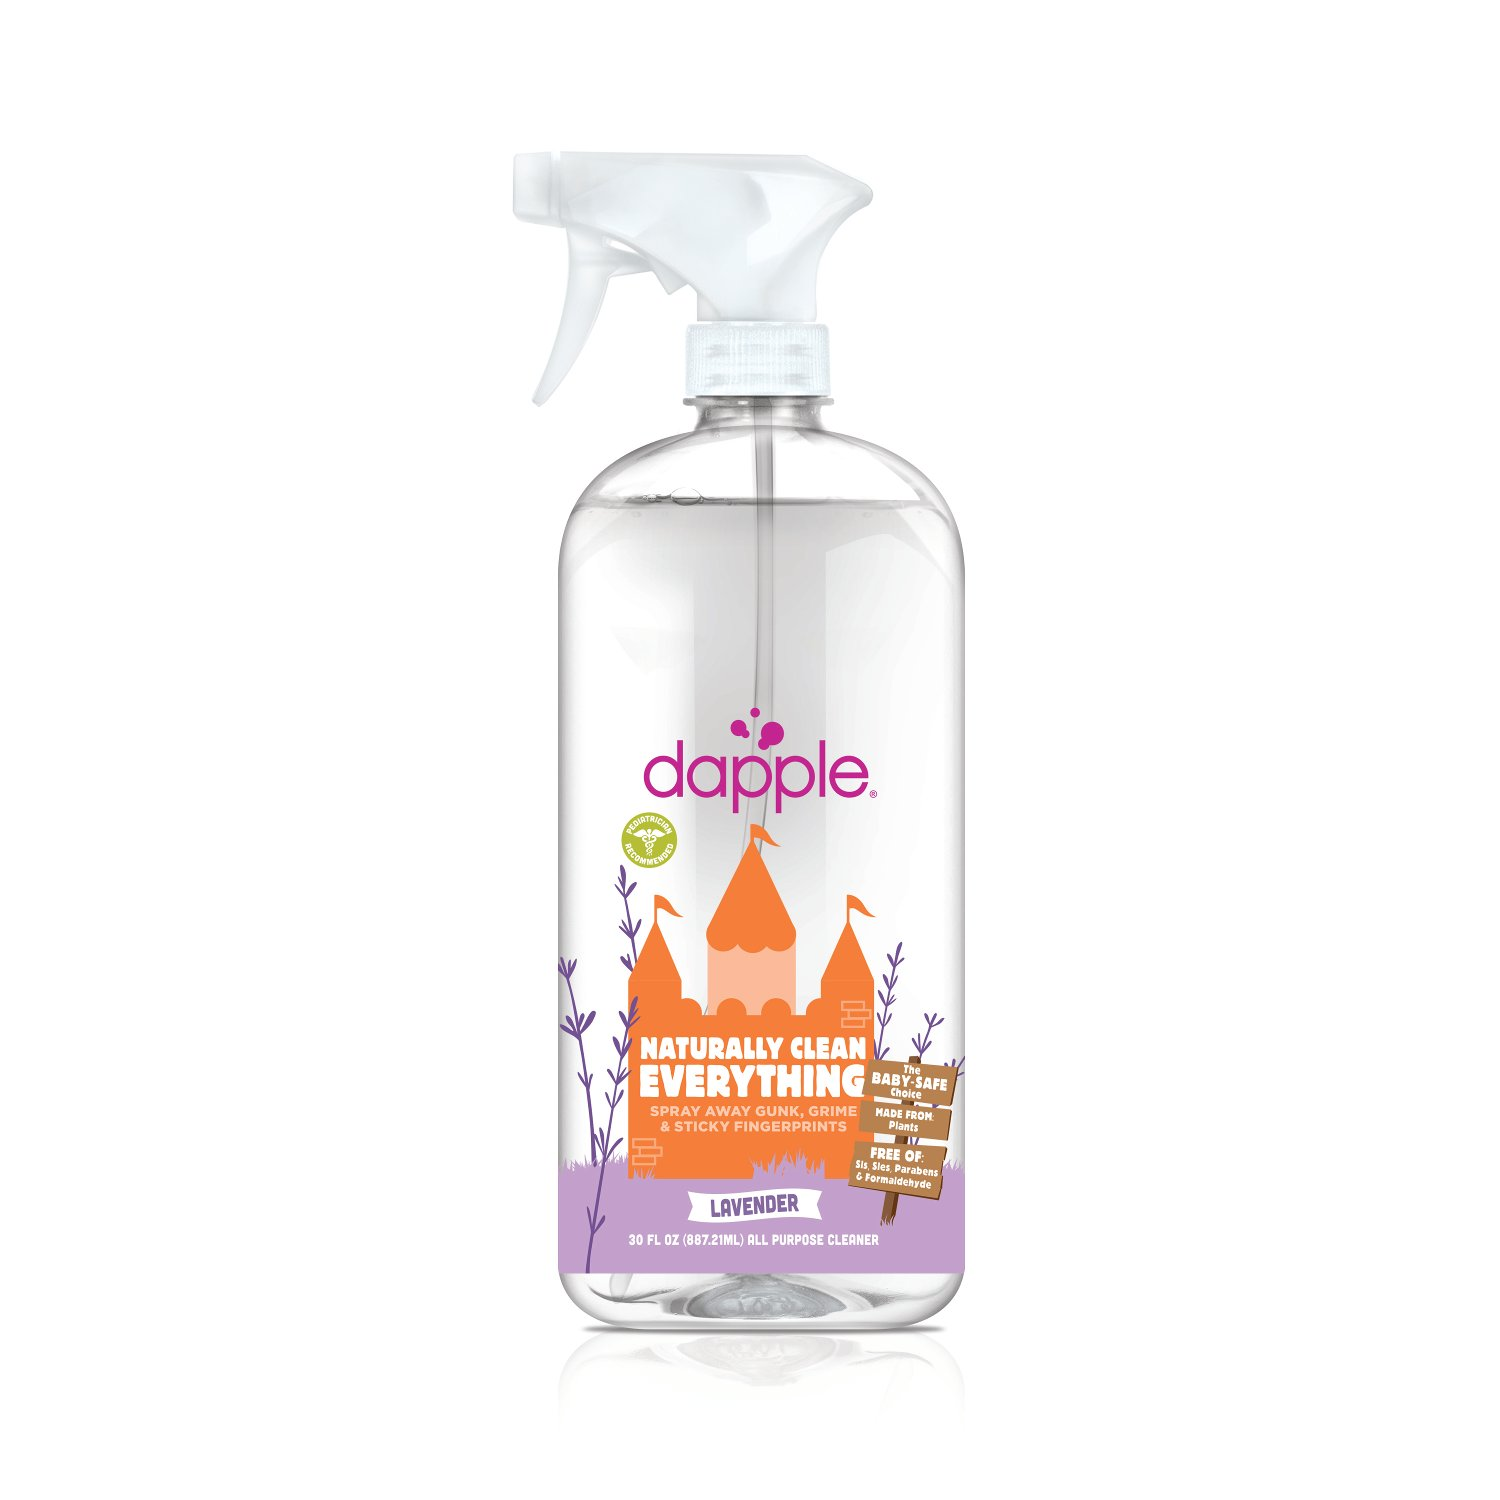 Quirks Marketing Philippines - Dapple - Naturally Clean All Purpose Cleaner